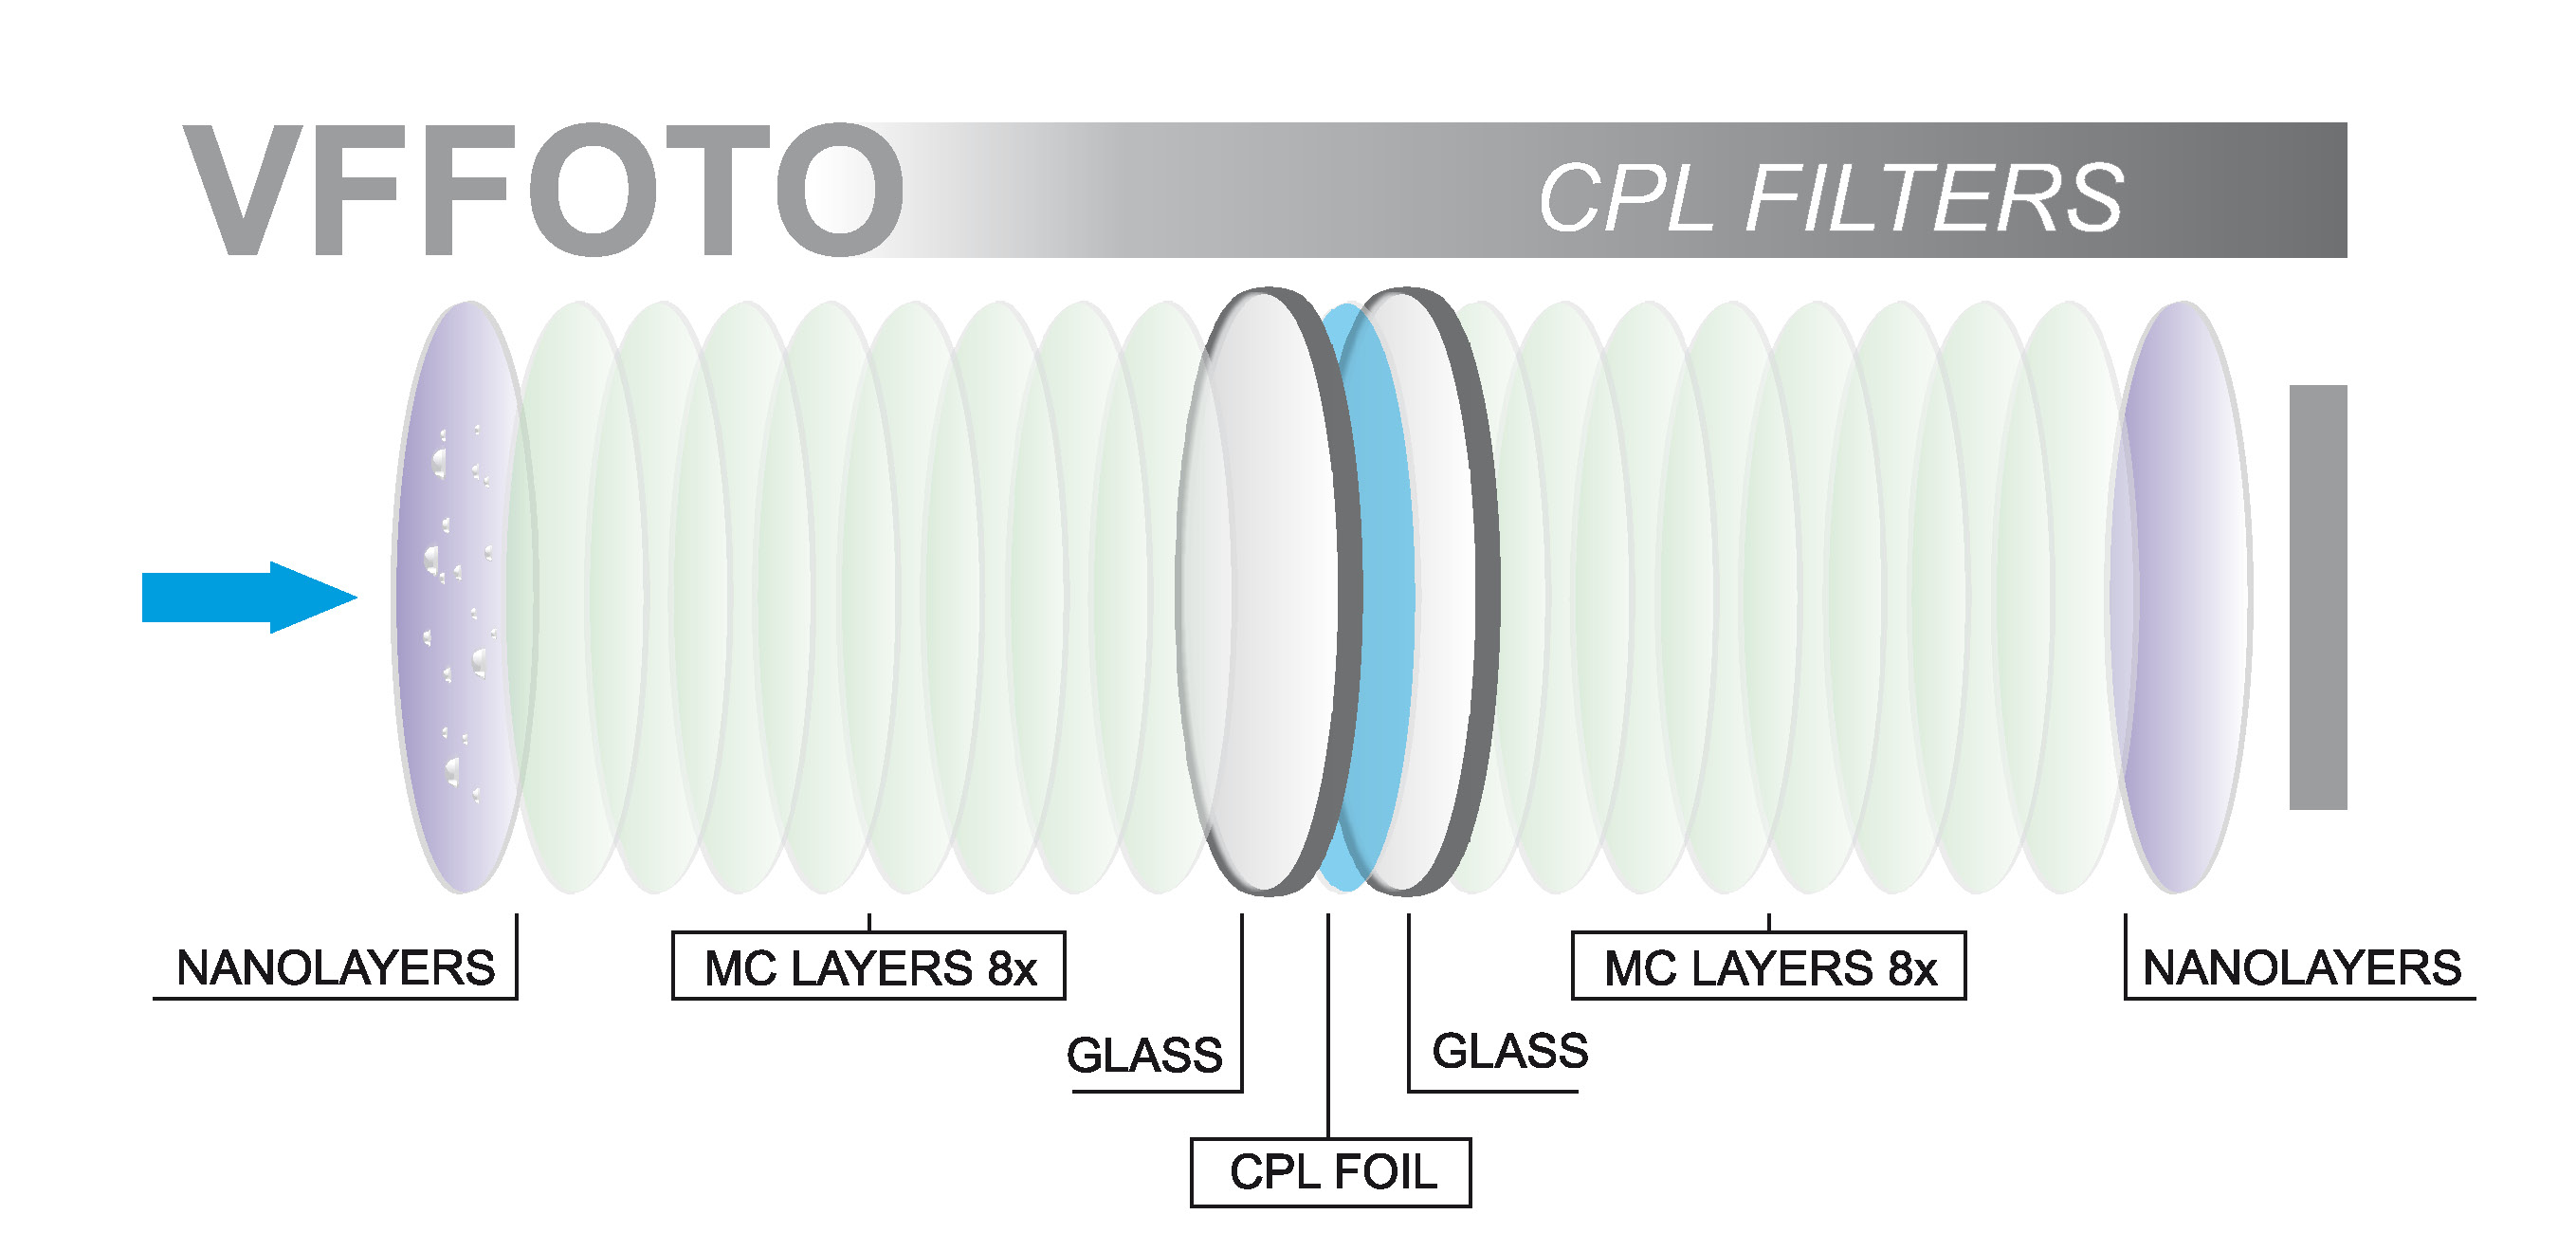 polarizing filter VFFOTO GS S